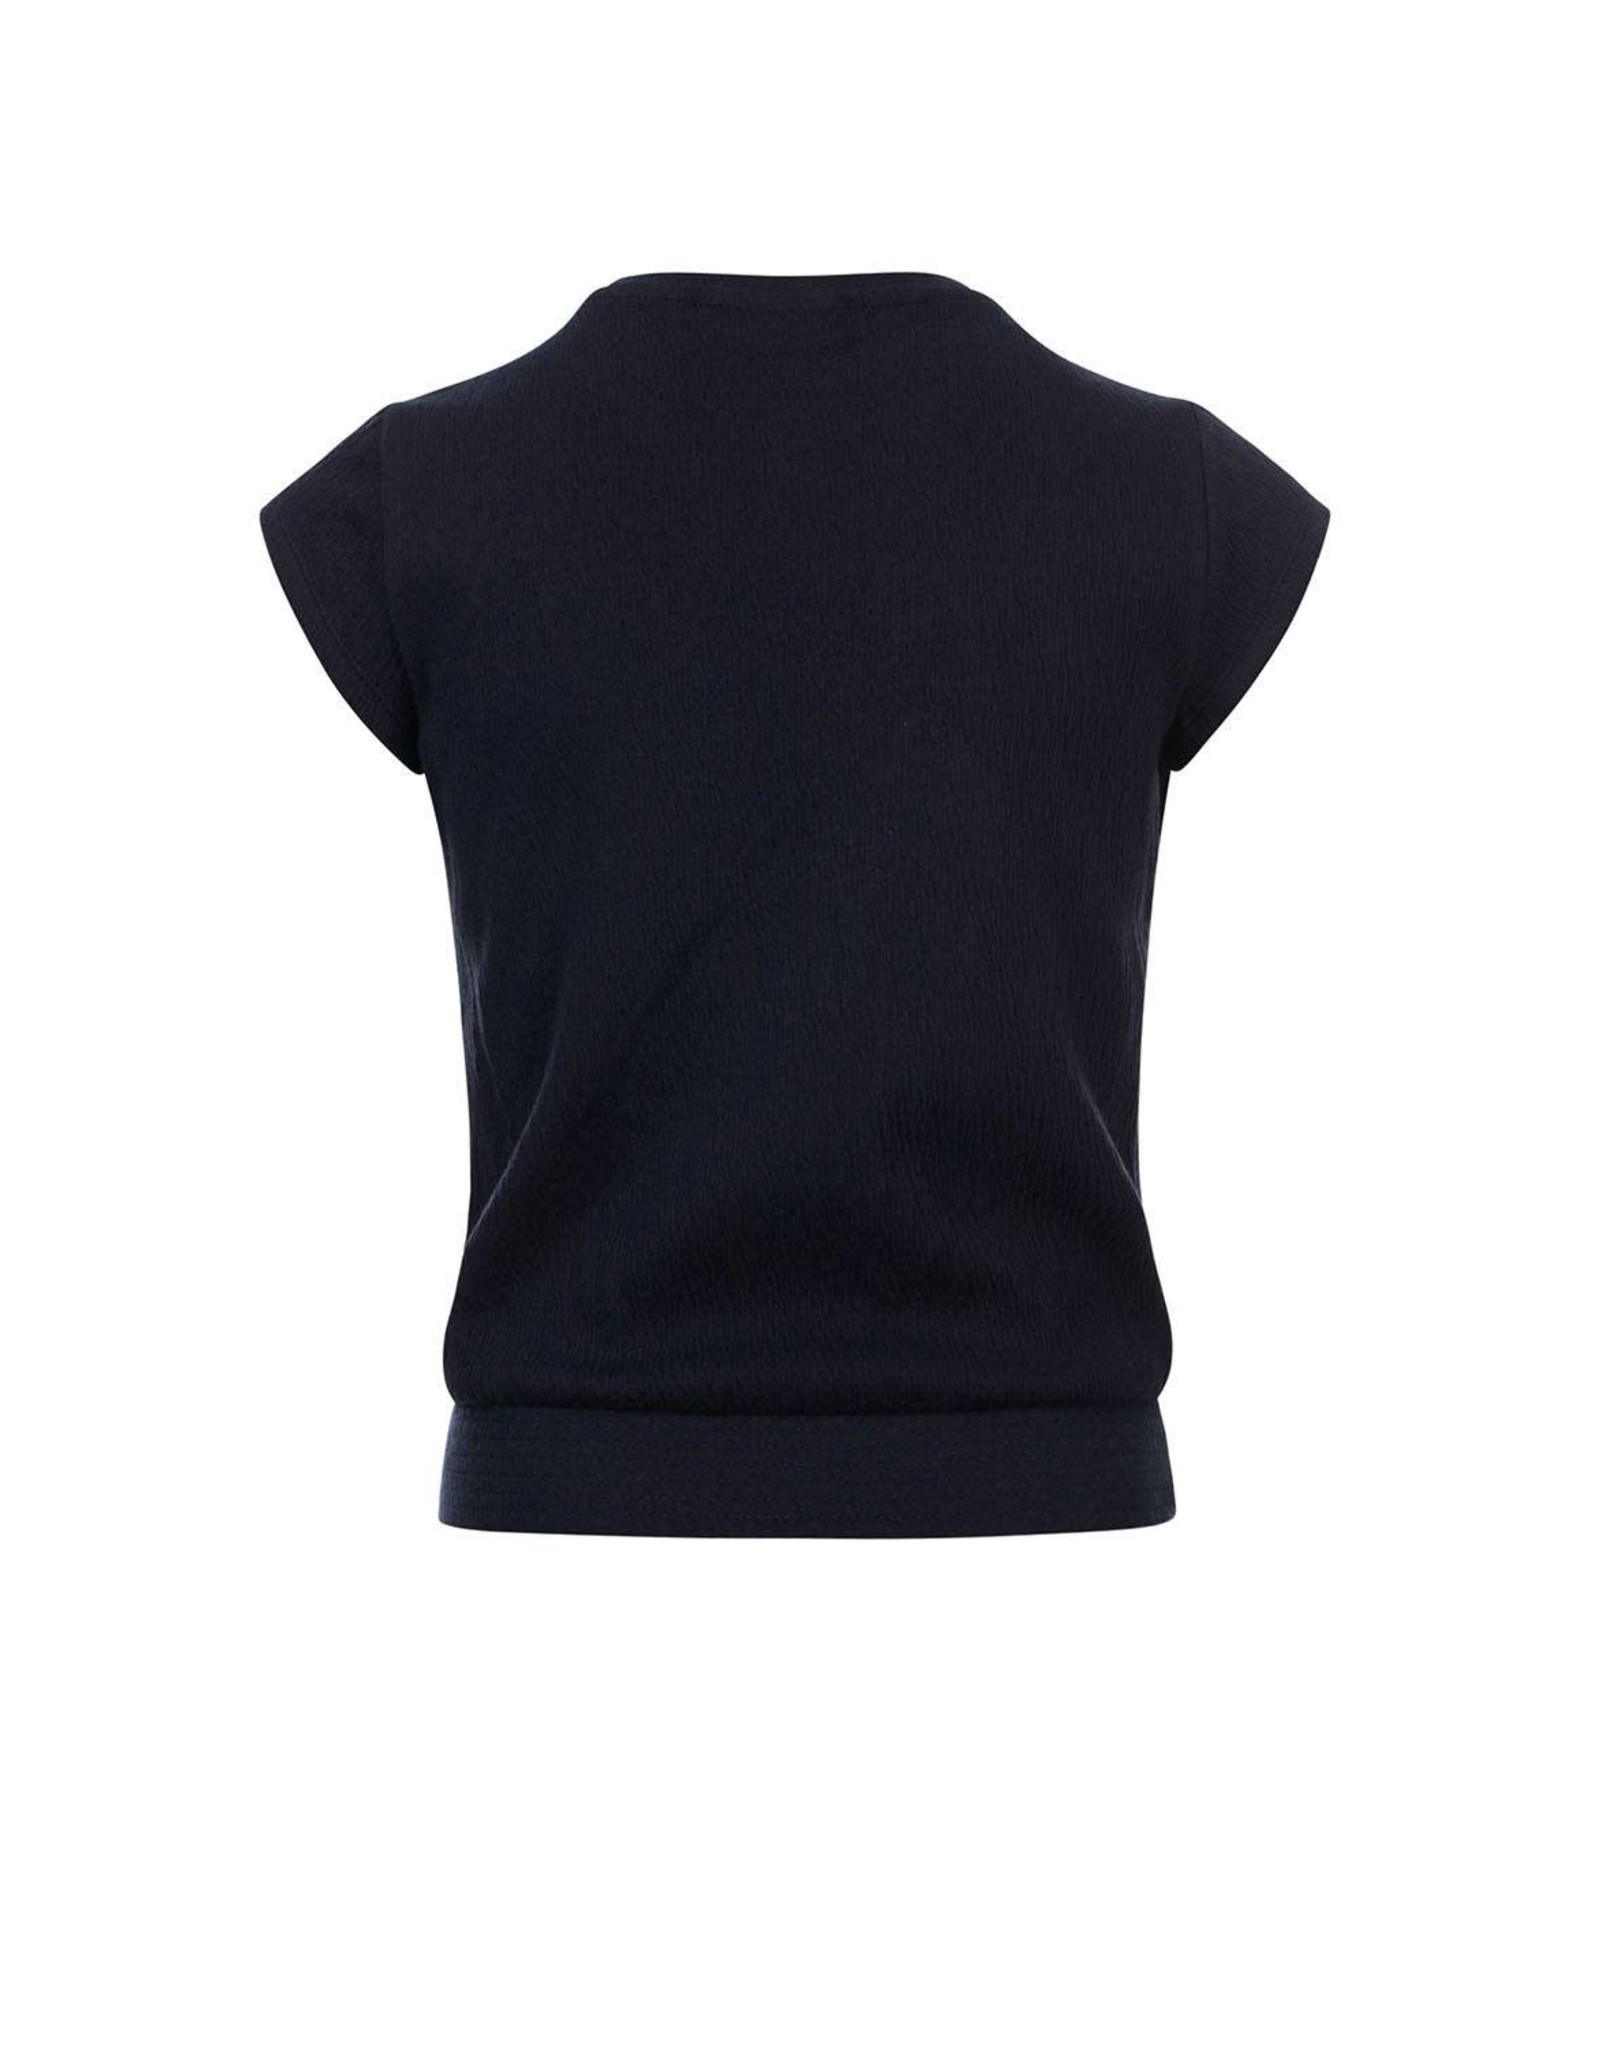 Looxs 10Sixteen Crinkle jersey top OXFORD BLUE